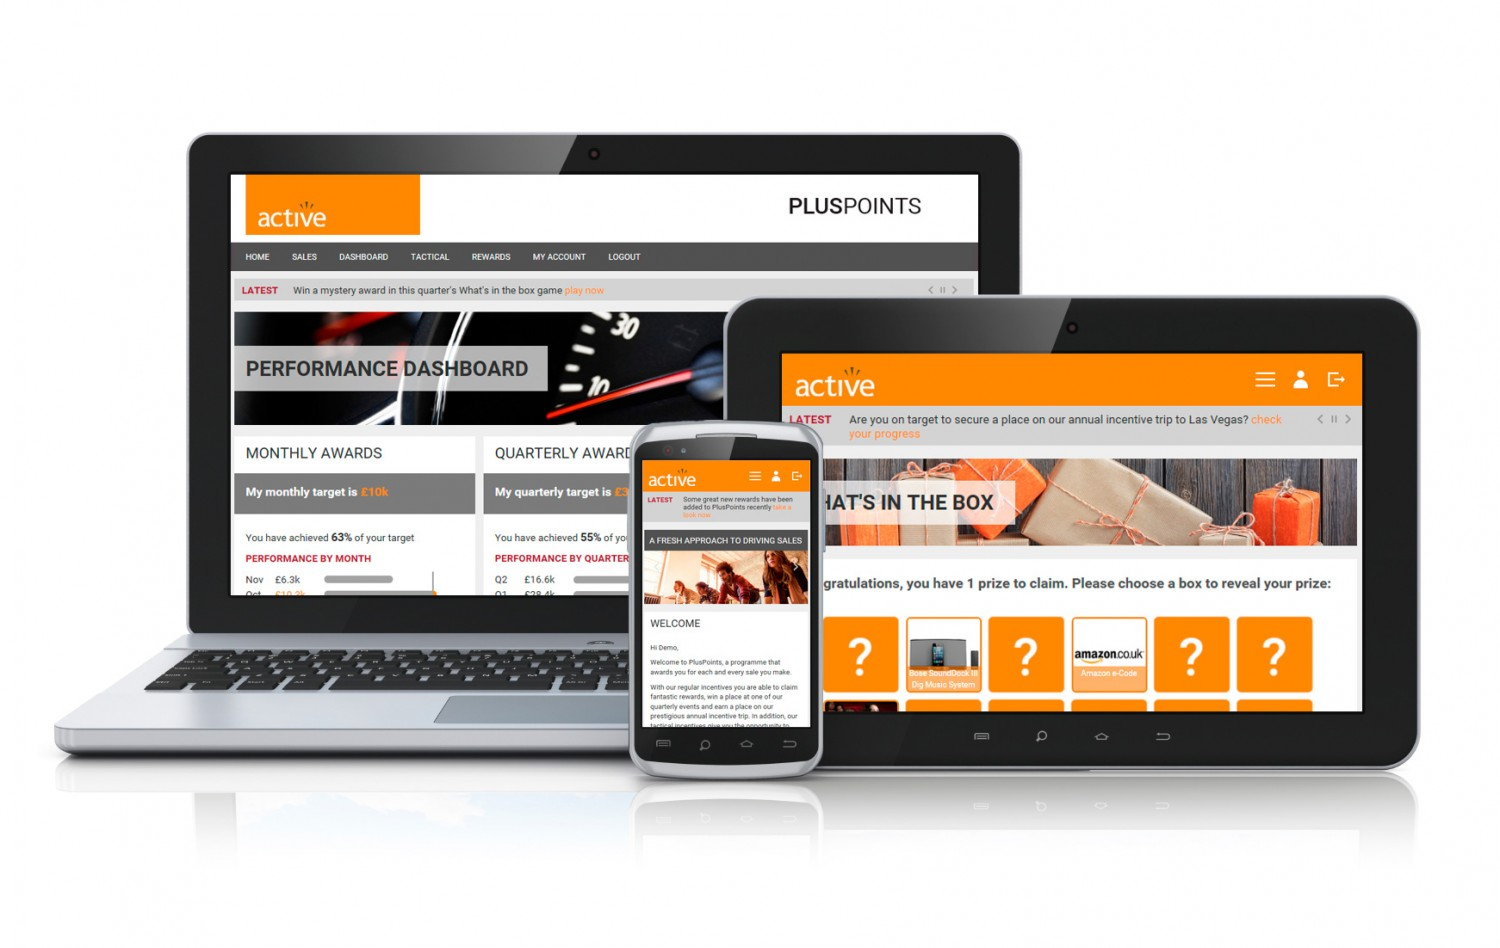 PlusPoints online incentive platform - for desktop, laptop, tablet and mobile